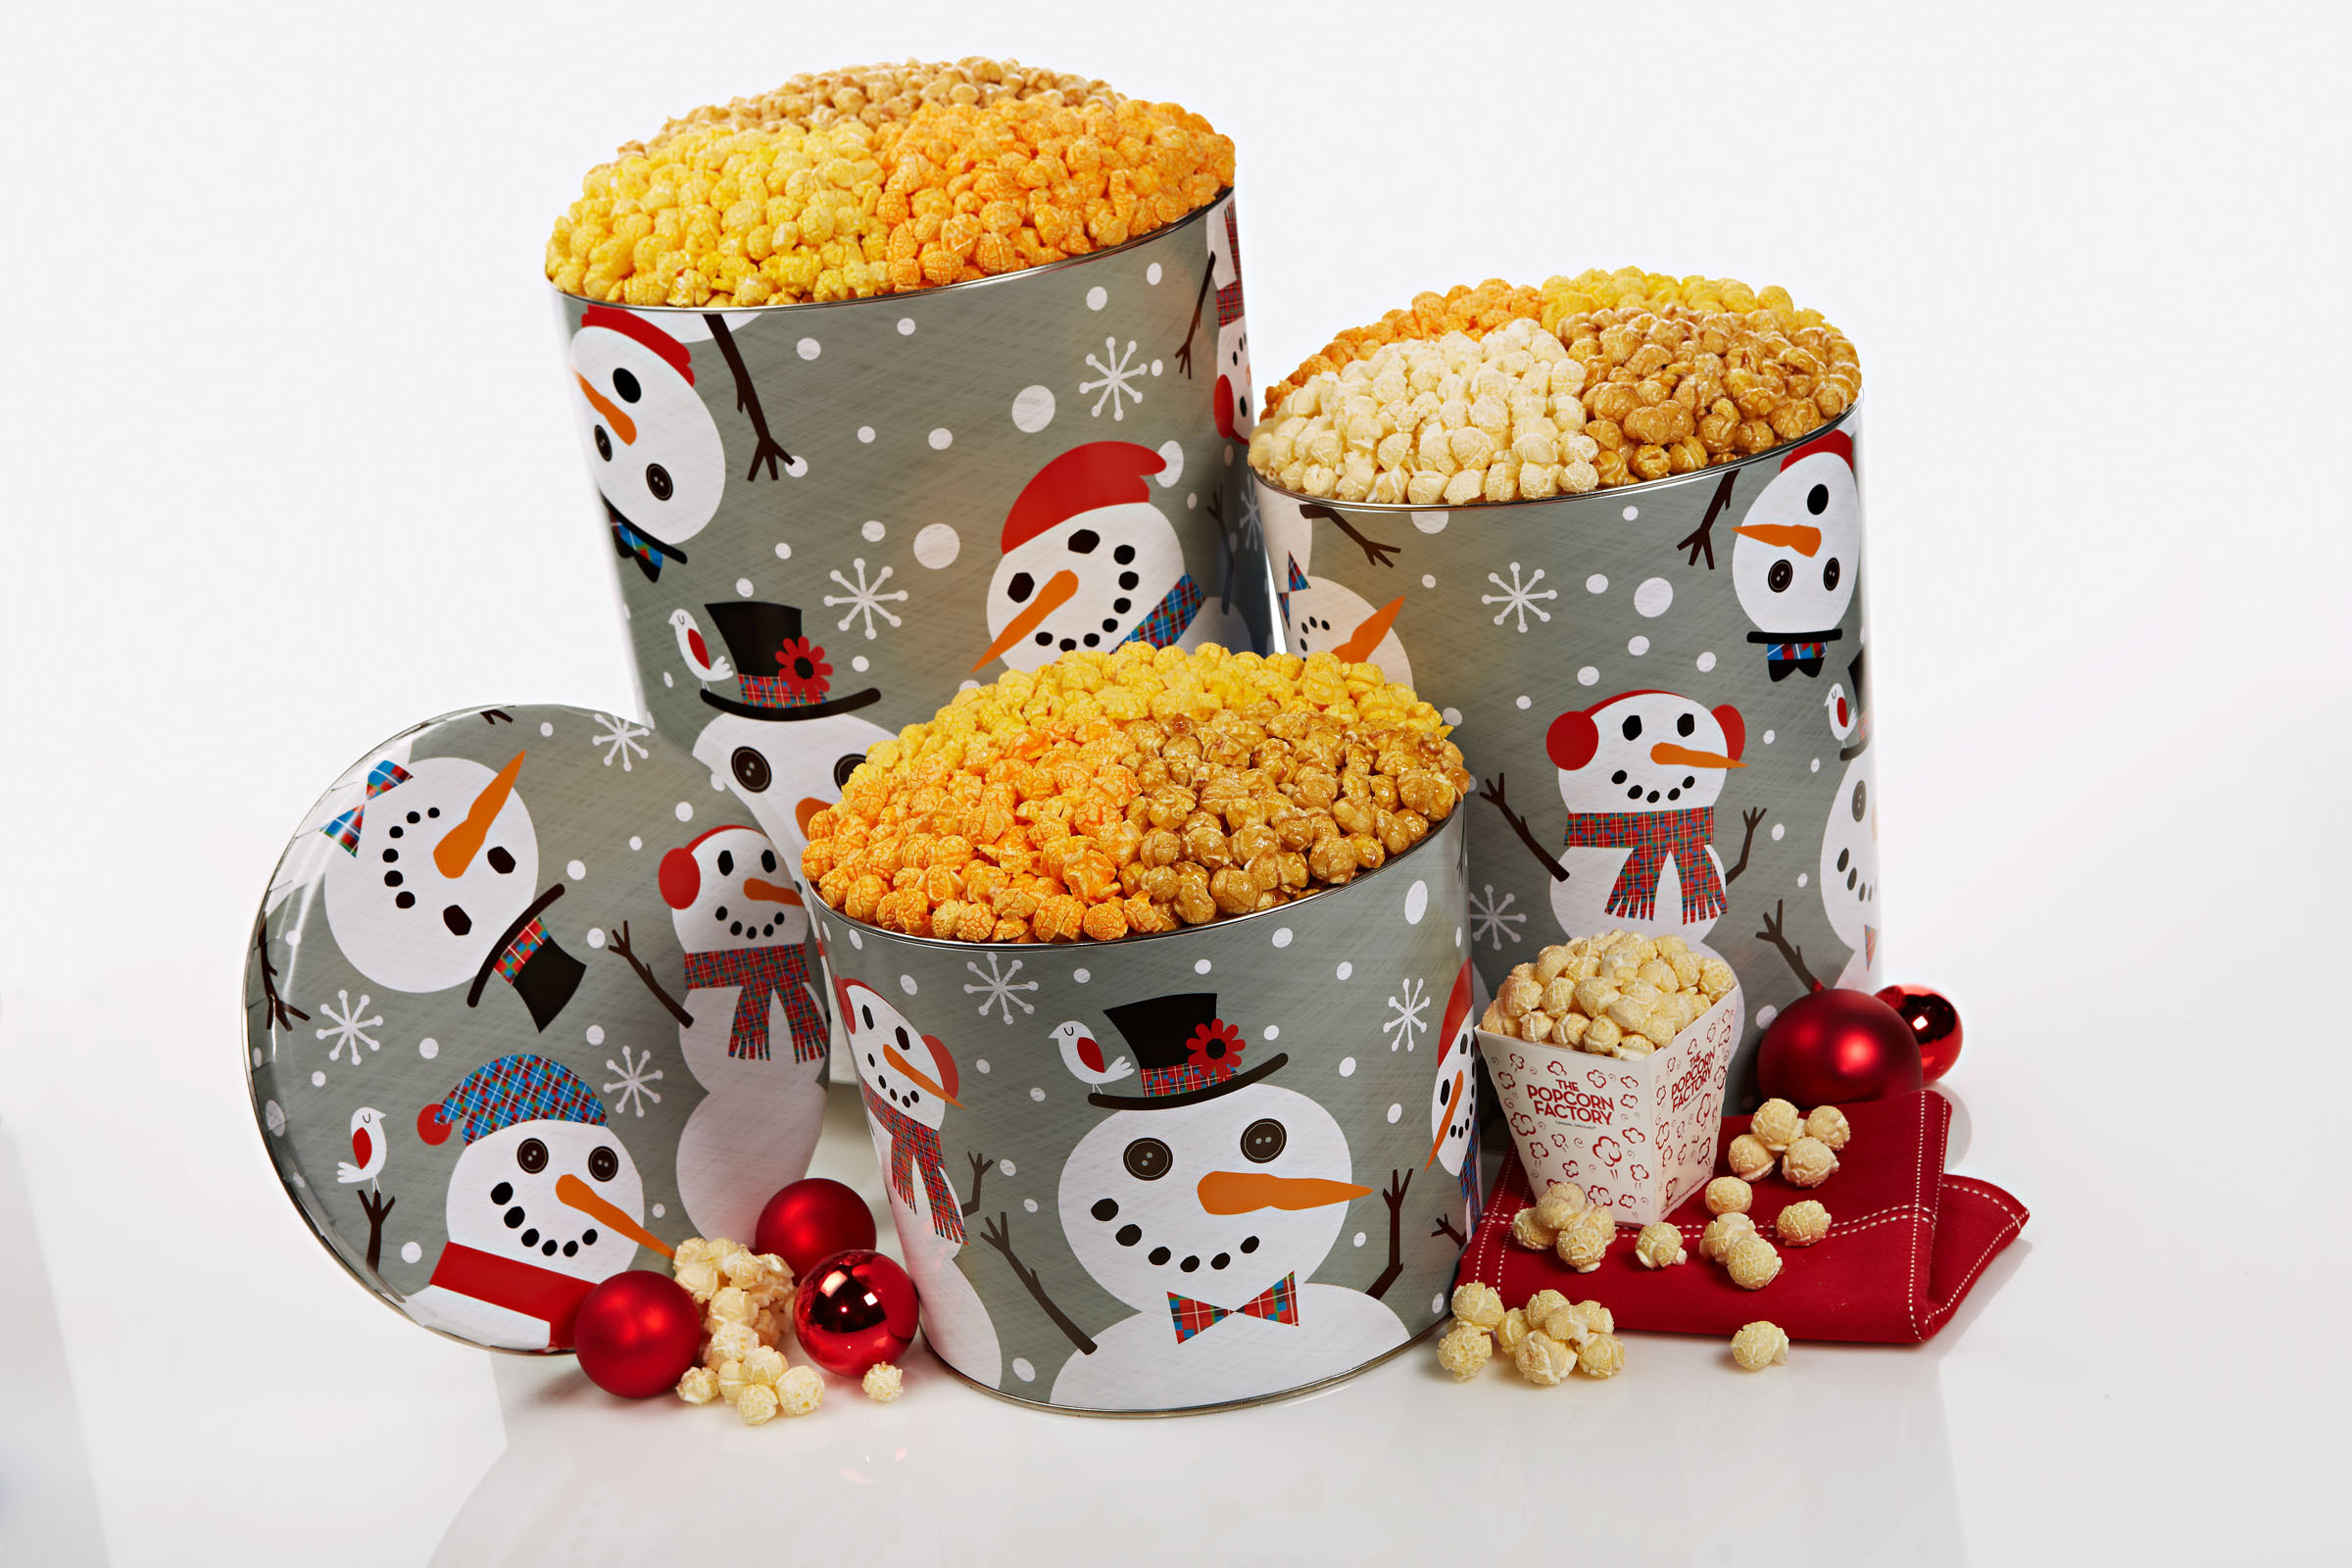 christmas gifts Archives - The Popcorn Factory®The Popcorn Factory®